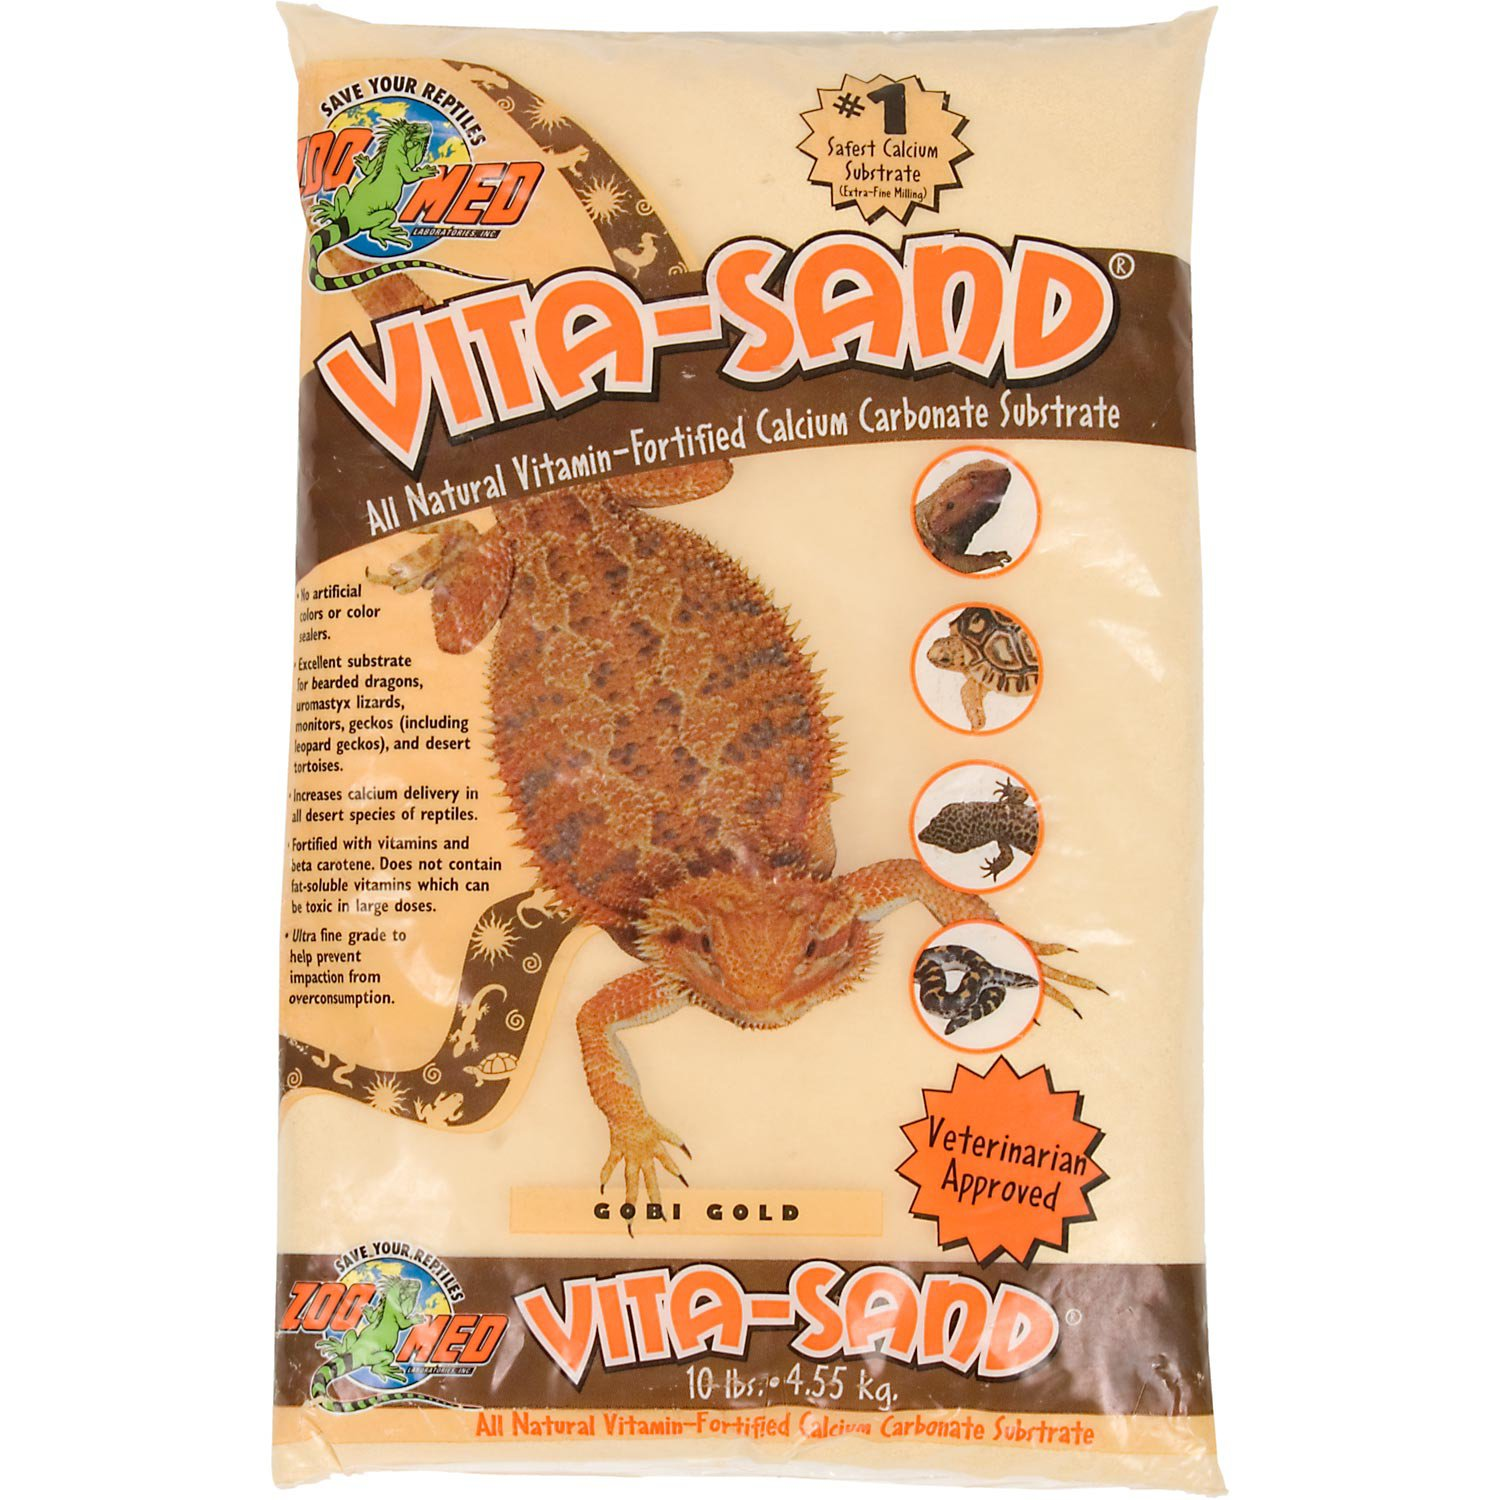 Zoo Med Vita-Sand in Gobi Gold